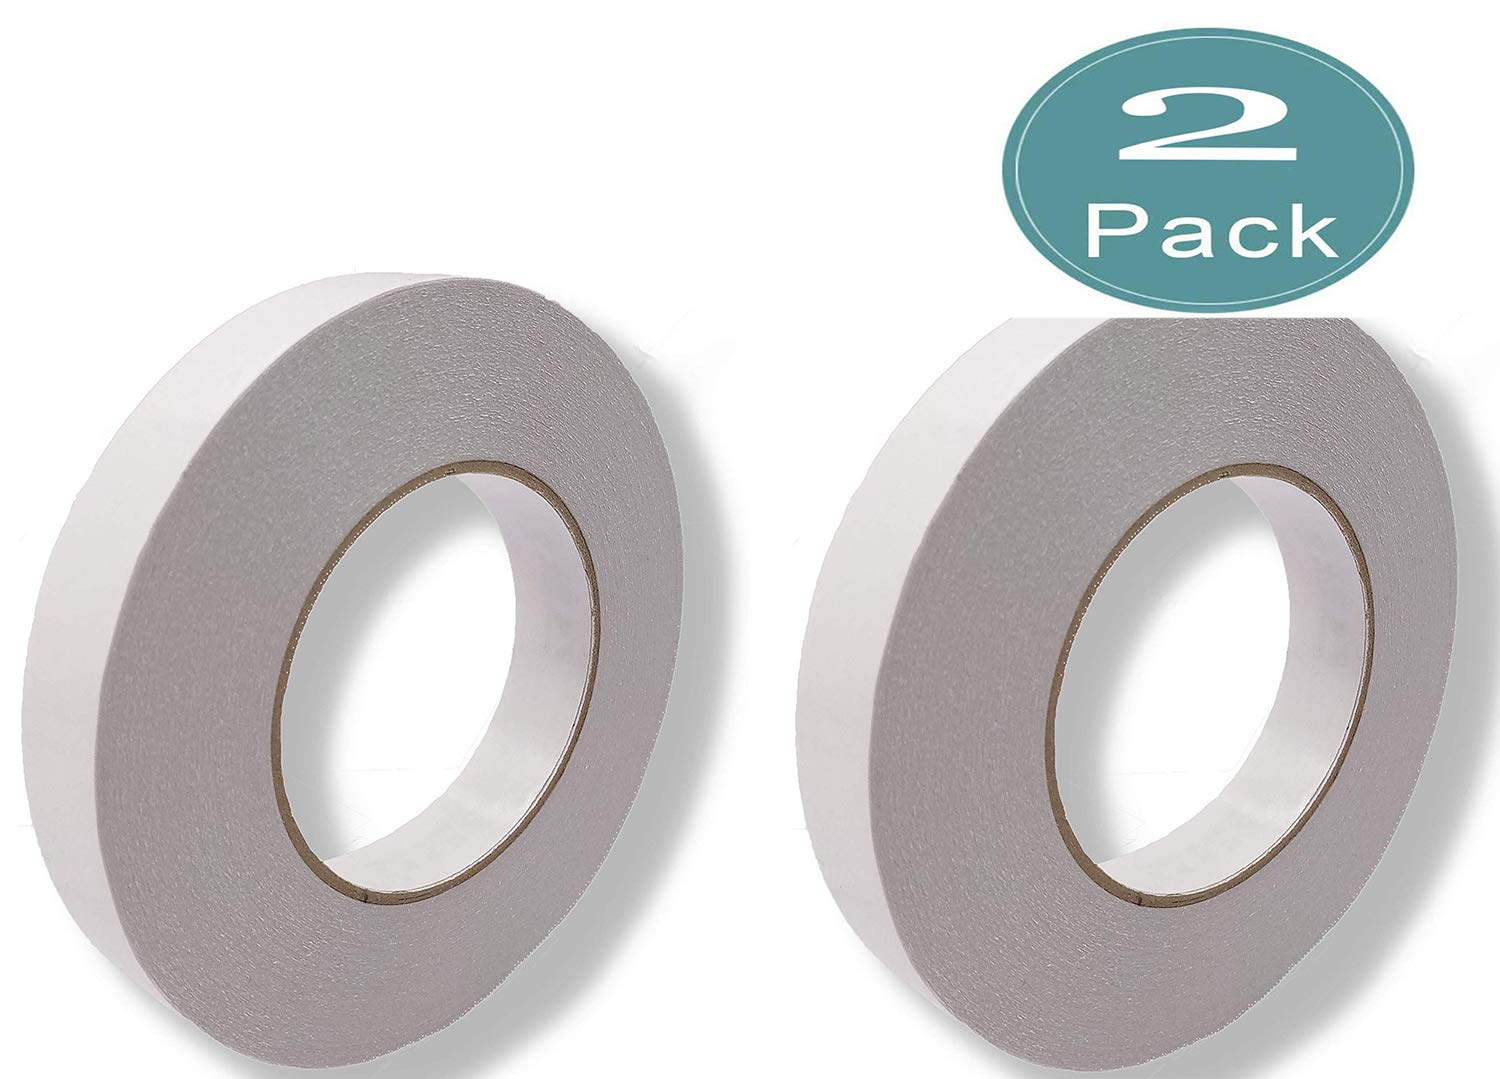 YCWEI Double Sided Adhesive Tape Thin 3/4 Inch 55 Yards Photos/File/Wallpaper and for Scrapbooking, Card Making, Gift Wrapping White 2PCS